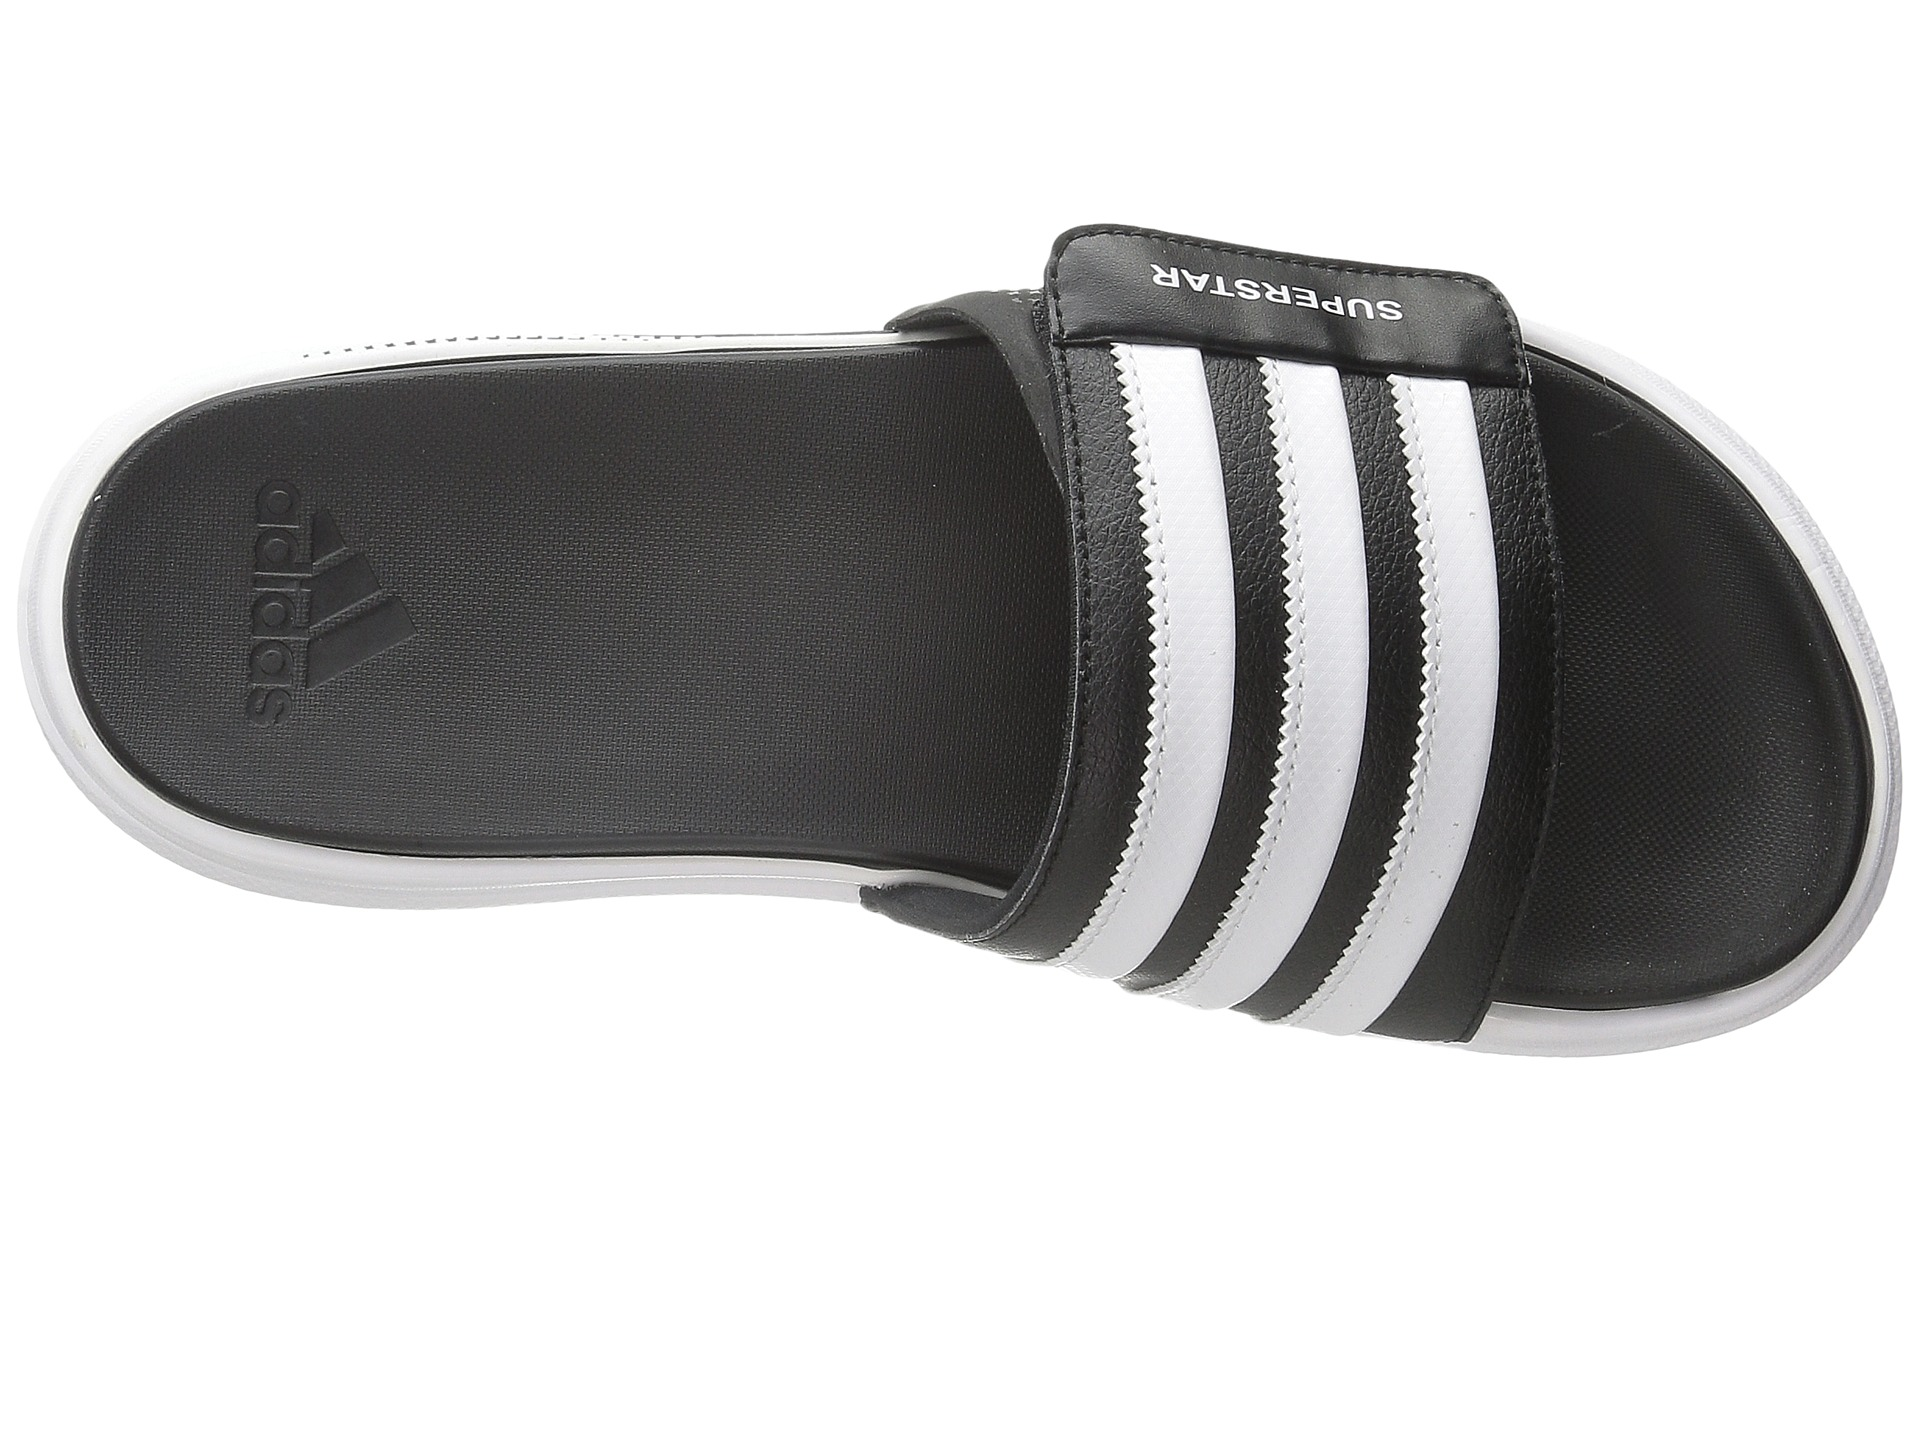 donald pliner outlet e944  adidas superstar sandals black